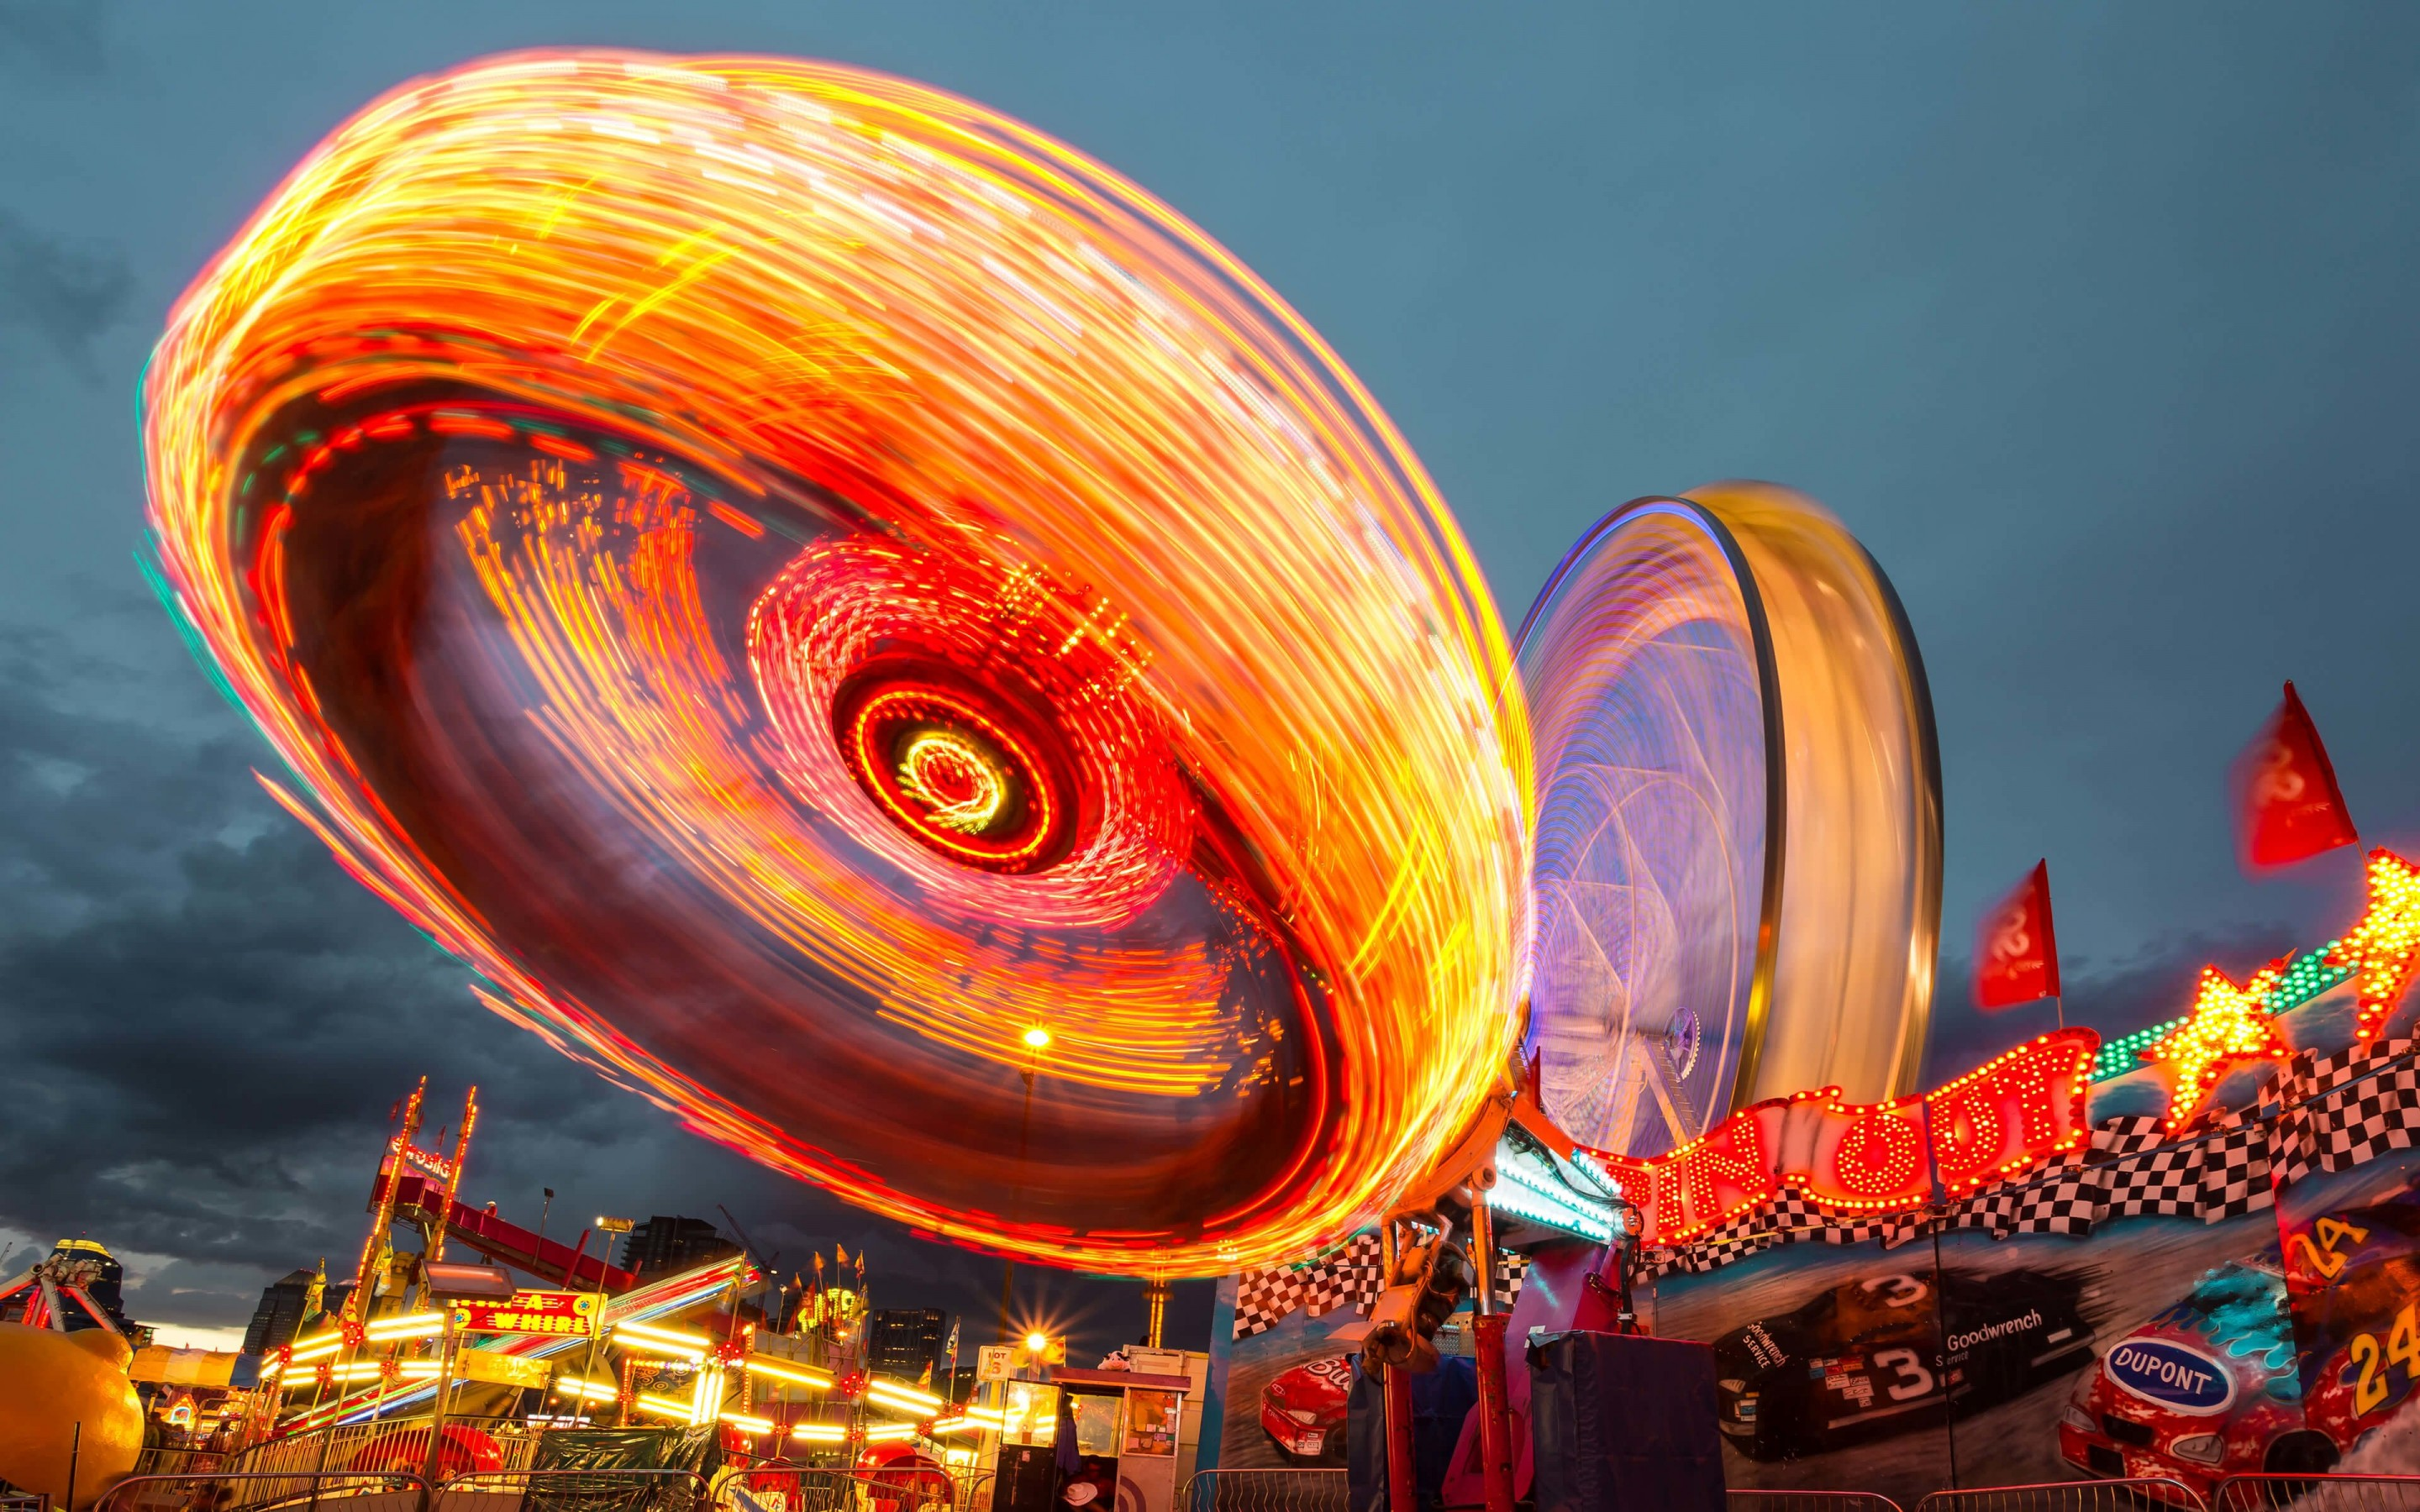 Calgary Stampede Lights Wallpaper for Desktop 2880x1800